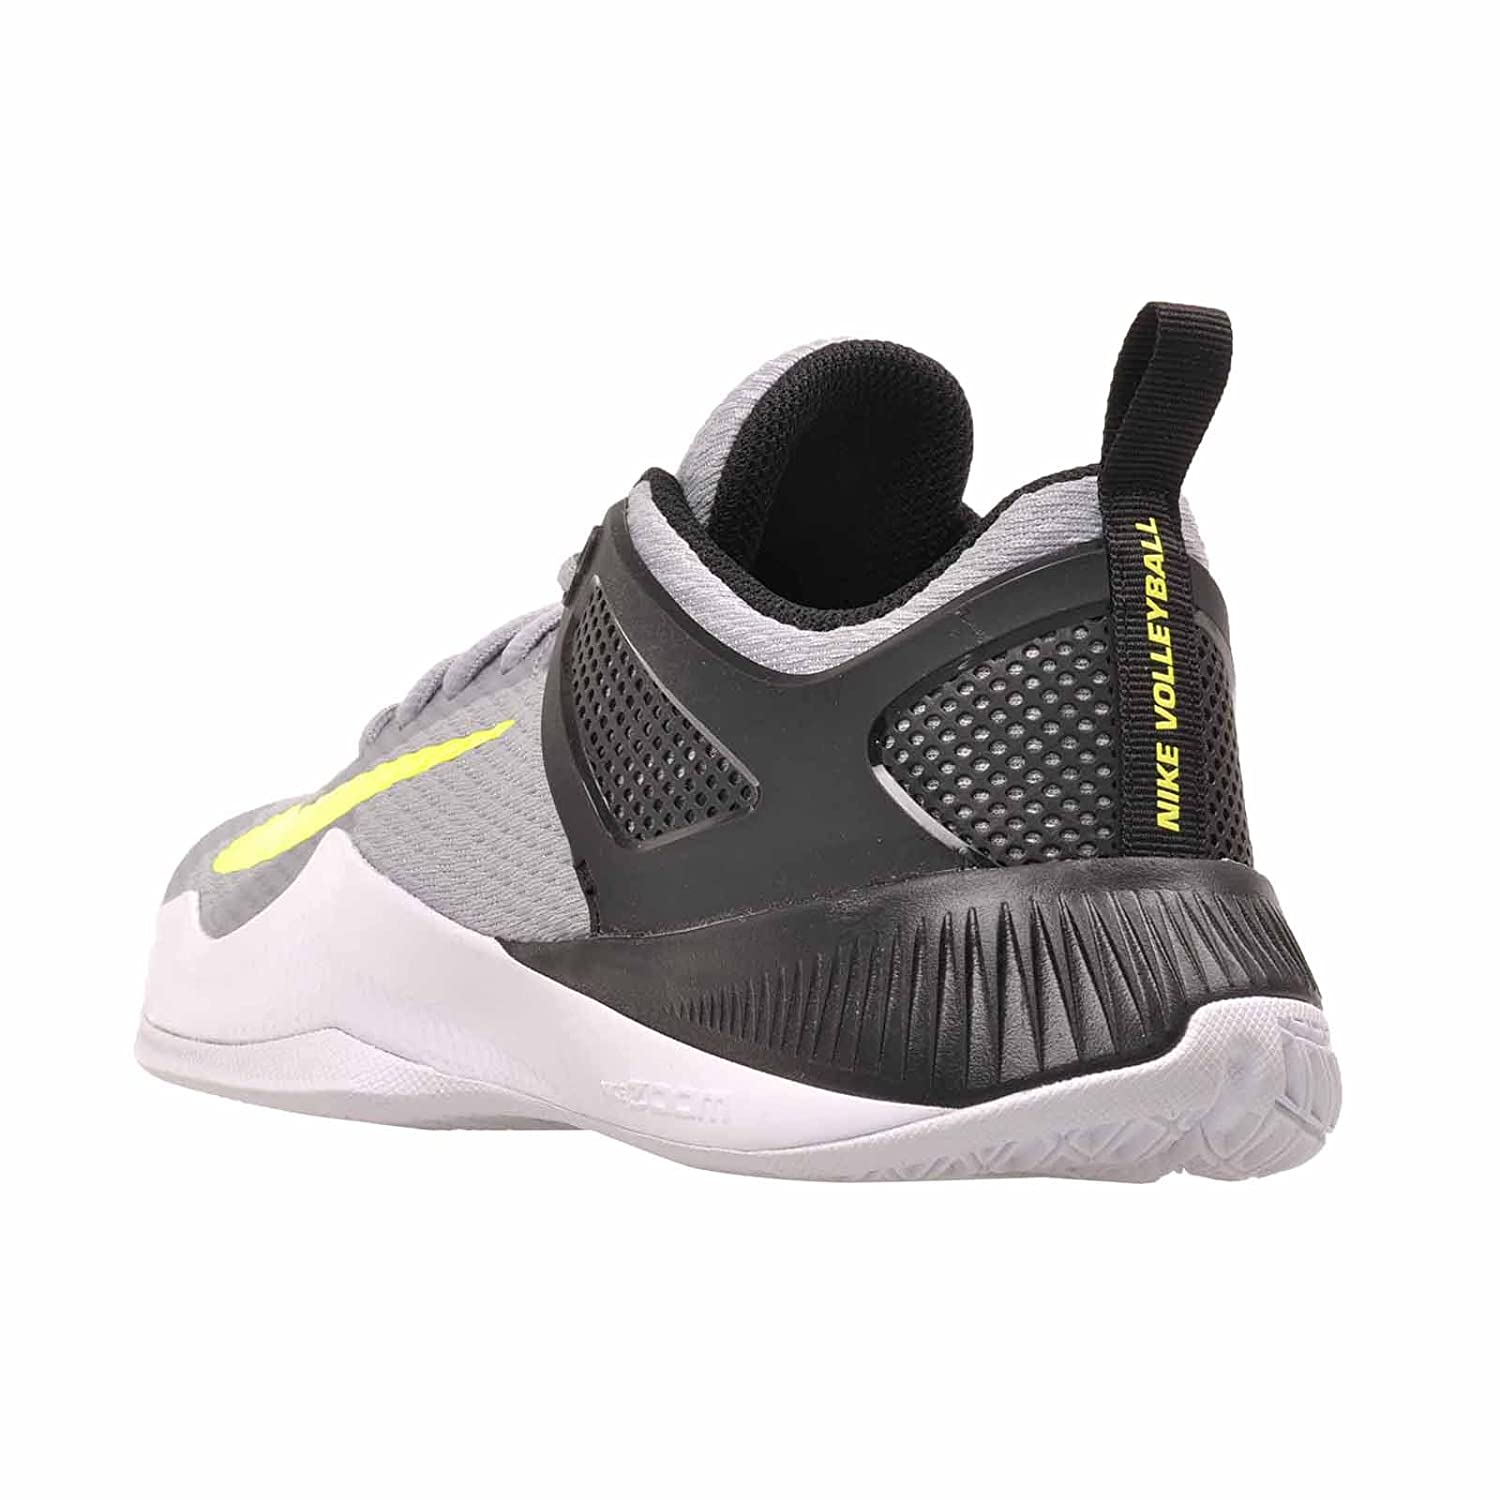 NIKE Women's Air B01LPSOWL8 Zoom Hyperace Volleyball Shoes B01LPSOWL8 Air 11.5 B(M) US|Wolf Grey/Volt/Black 191bb3